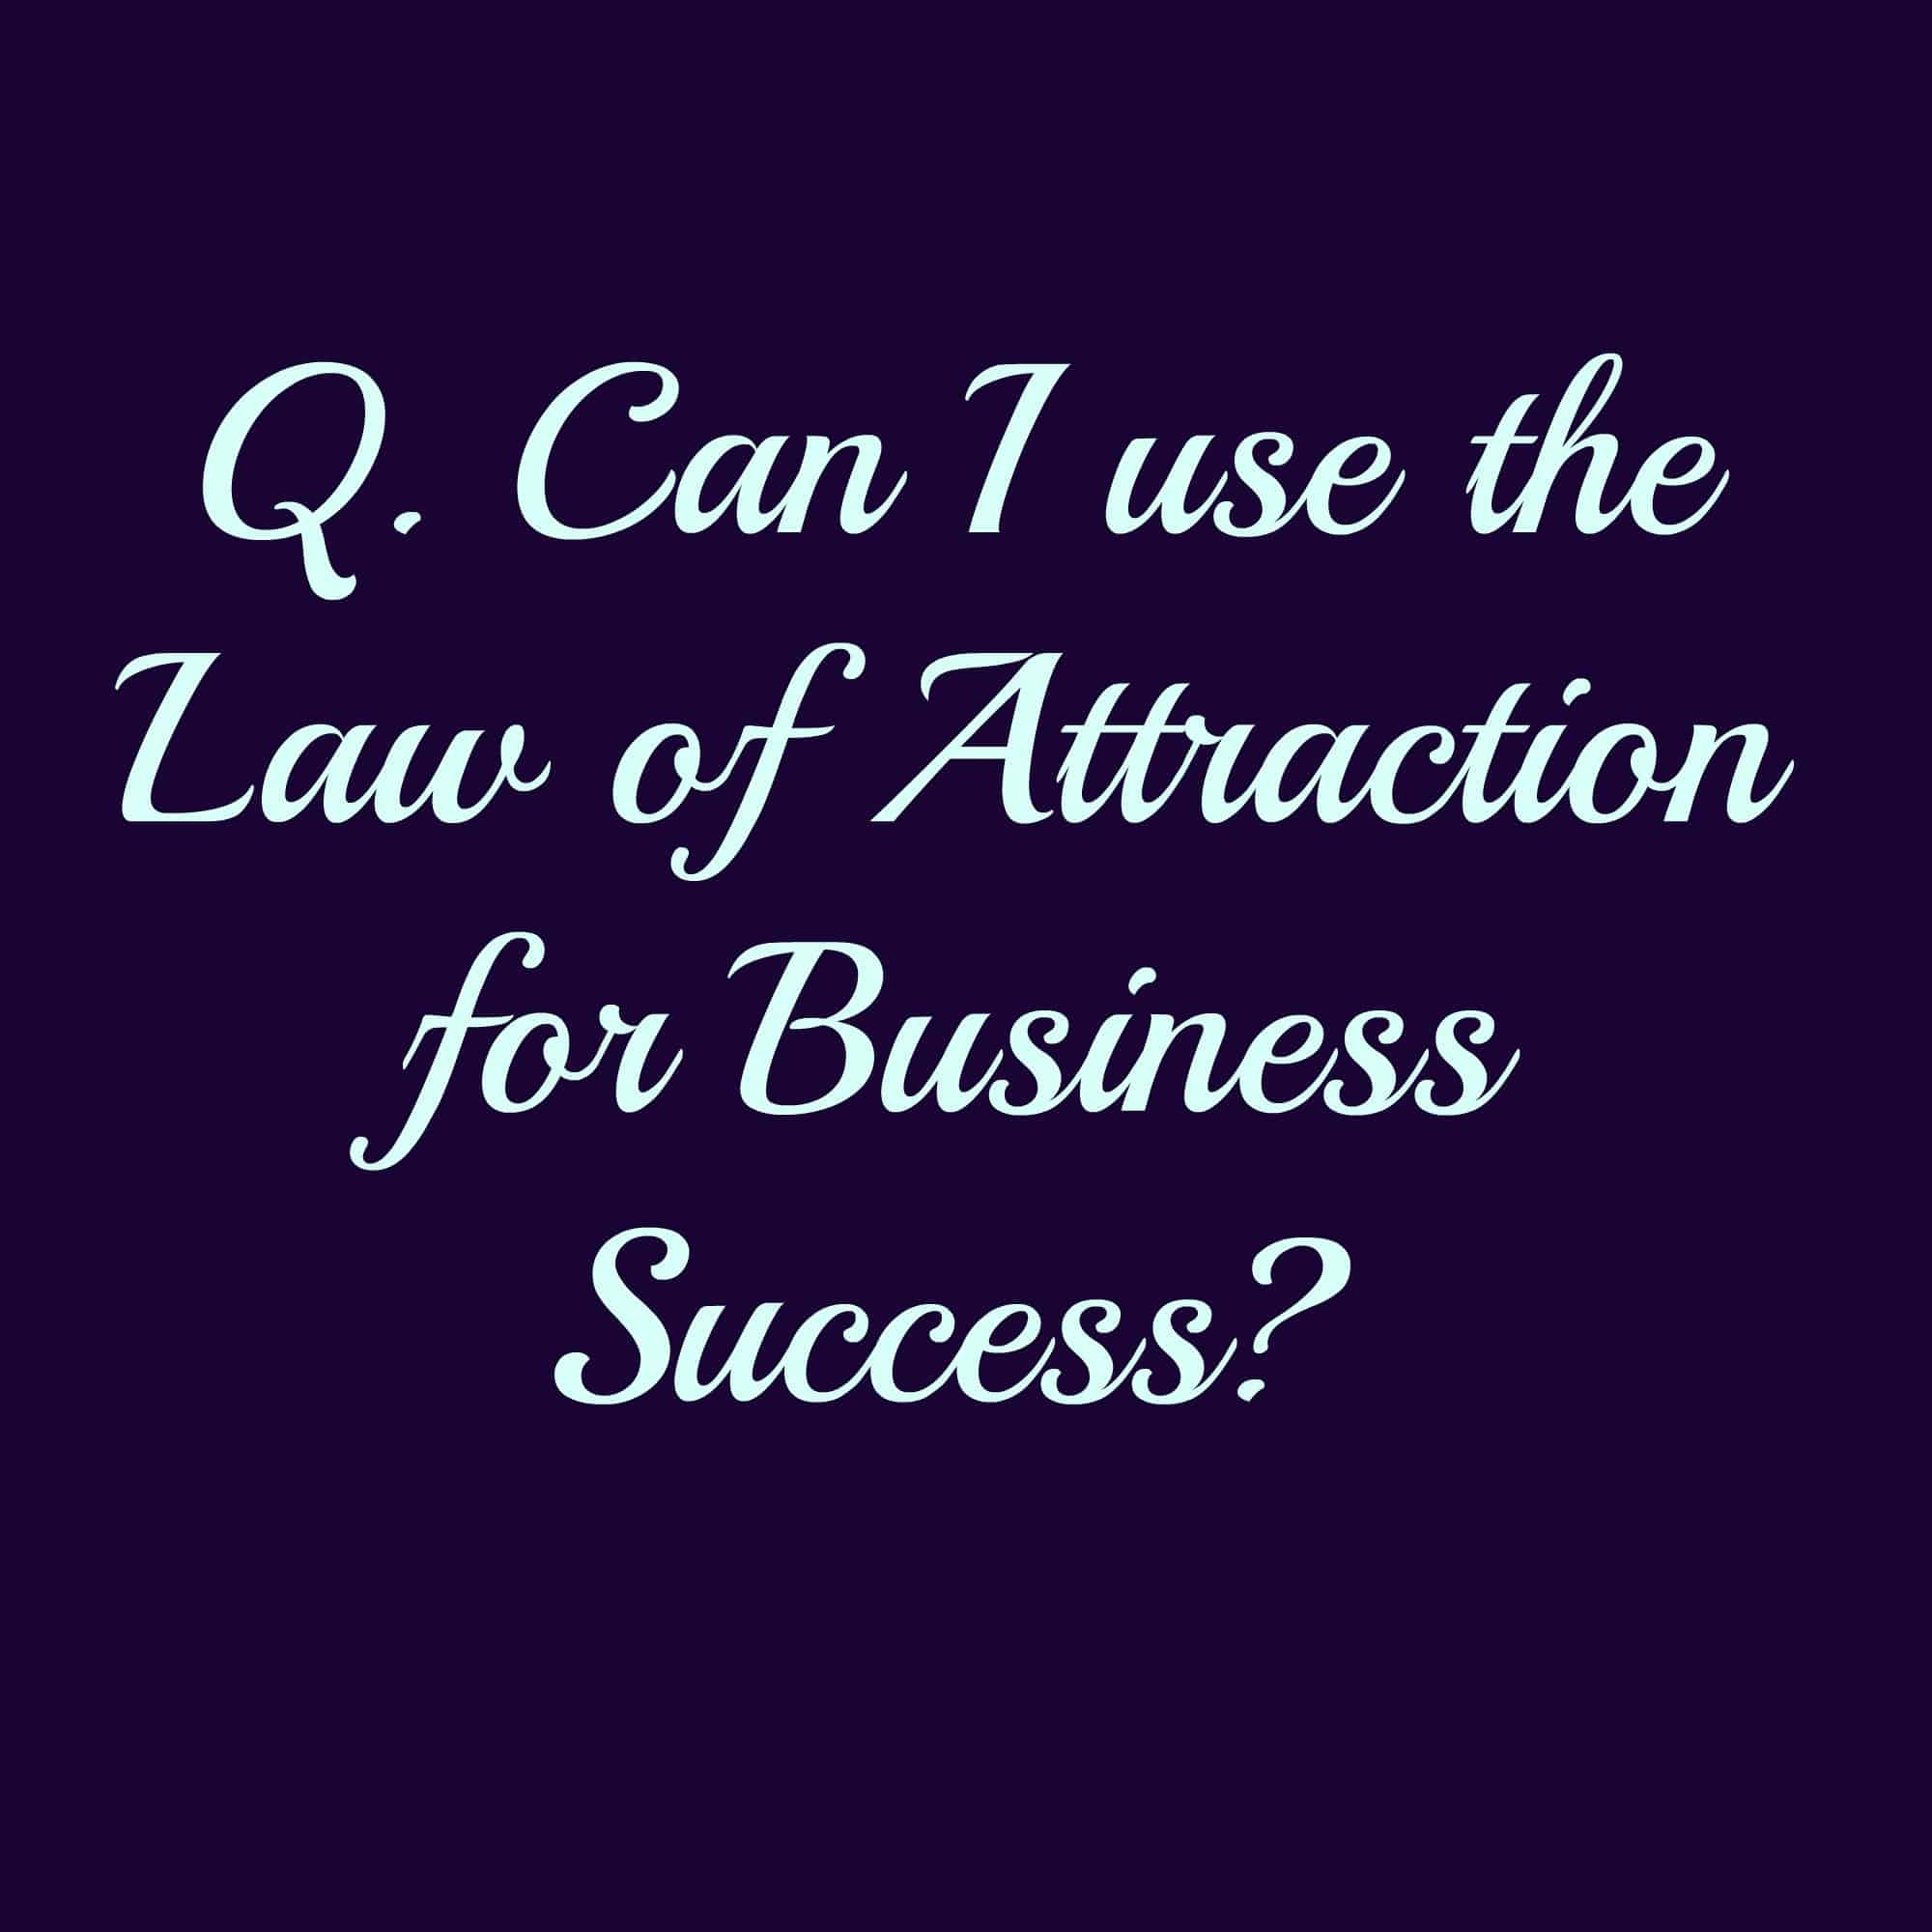 Can I use the law of attraction for business success? This is a clear yes, click through for my top tips